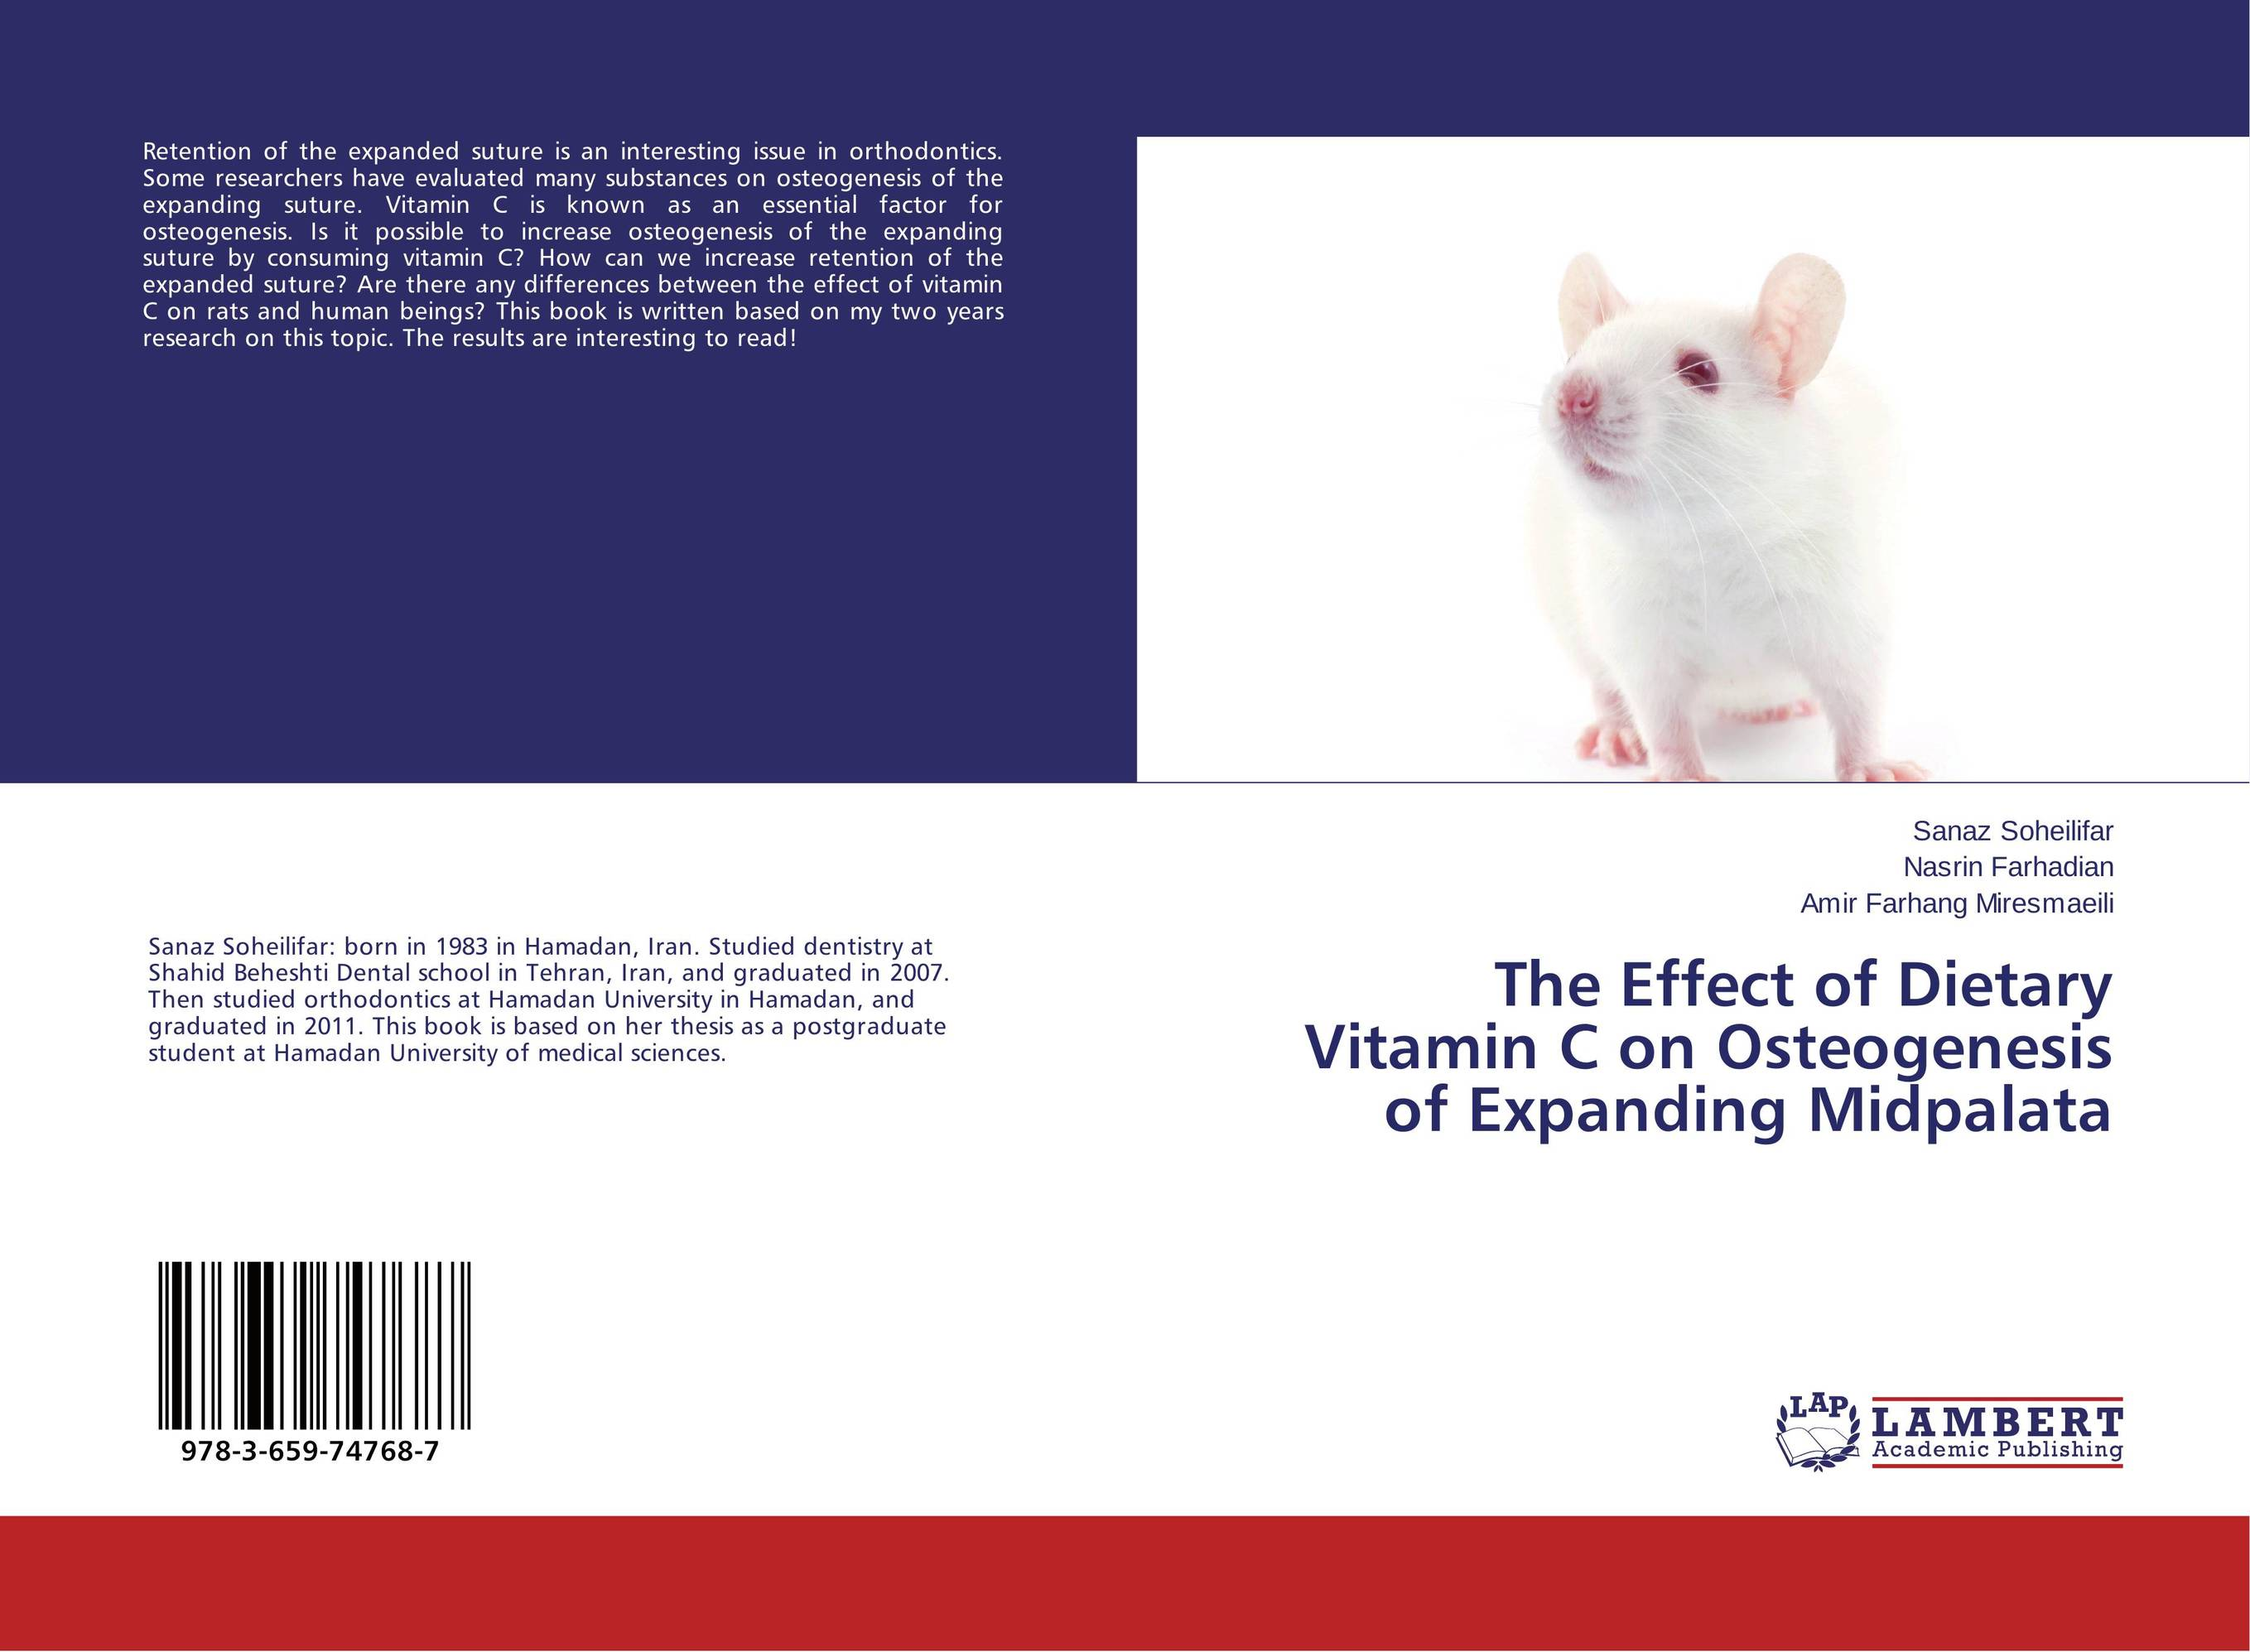 The Effect of Dietary Vitamin C on Osteogenesis of Expanding Midpalata vitamin d effect on calcium homeostasis in preeclampsia